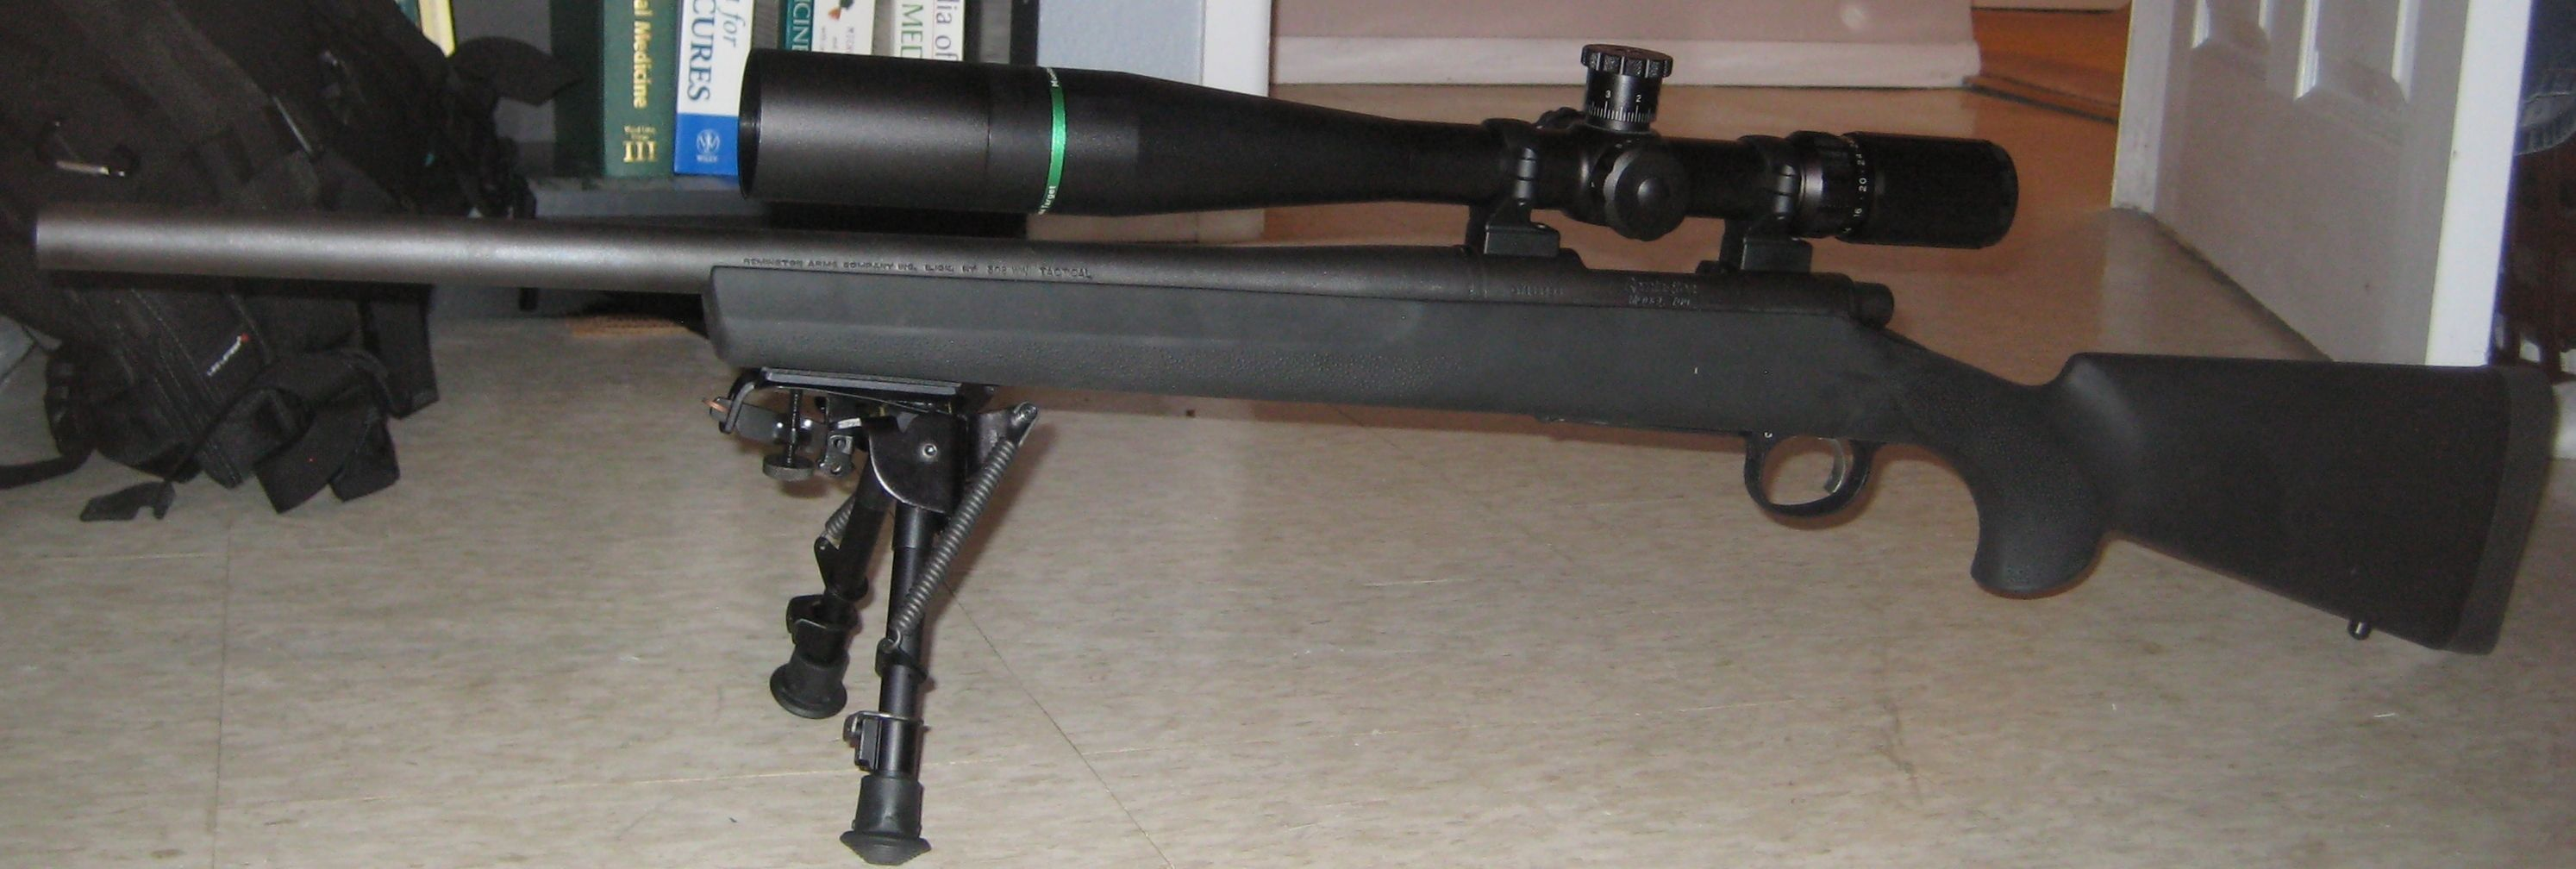 Remington 700 SPS Tactical Heavy Barrel 7 62x51mm 4rd, Harris Bi-Pod